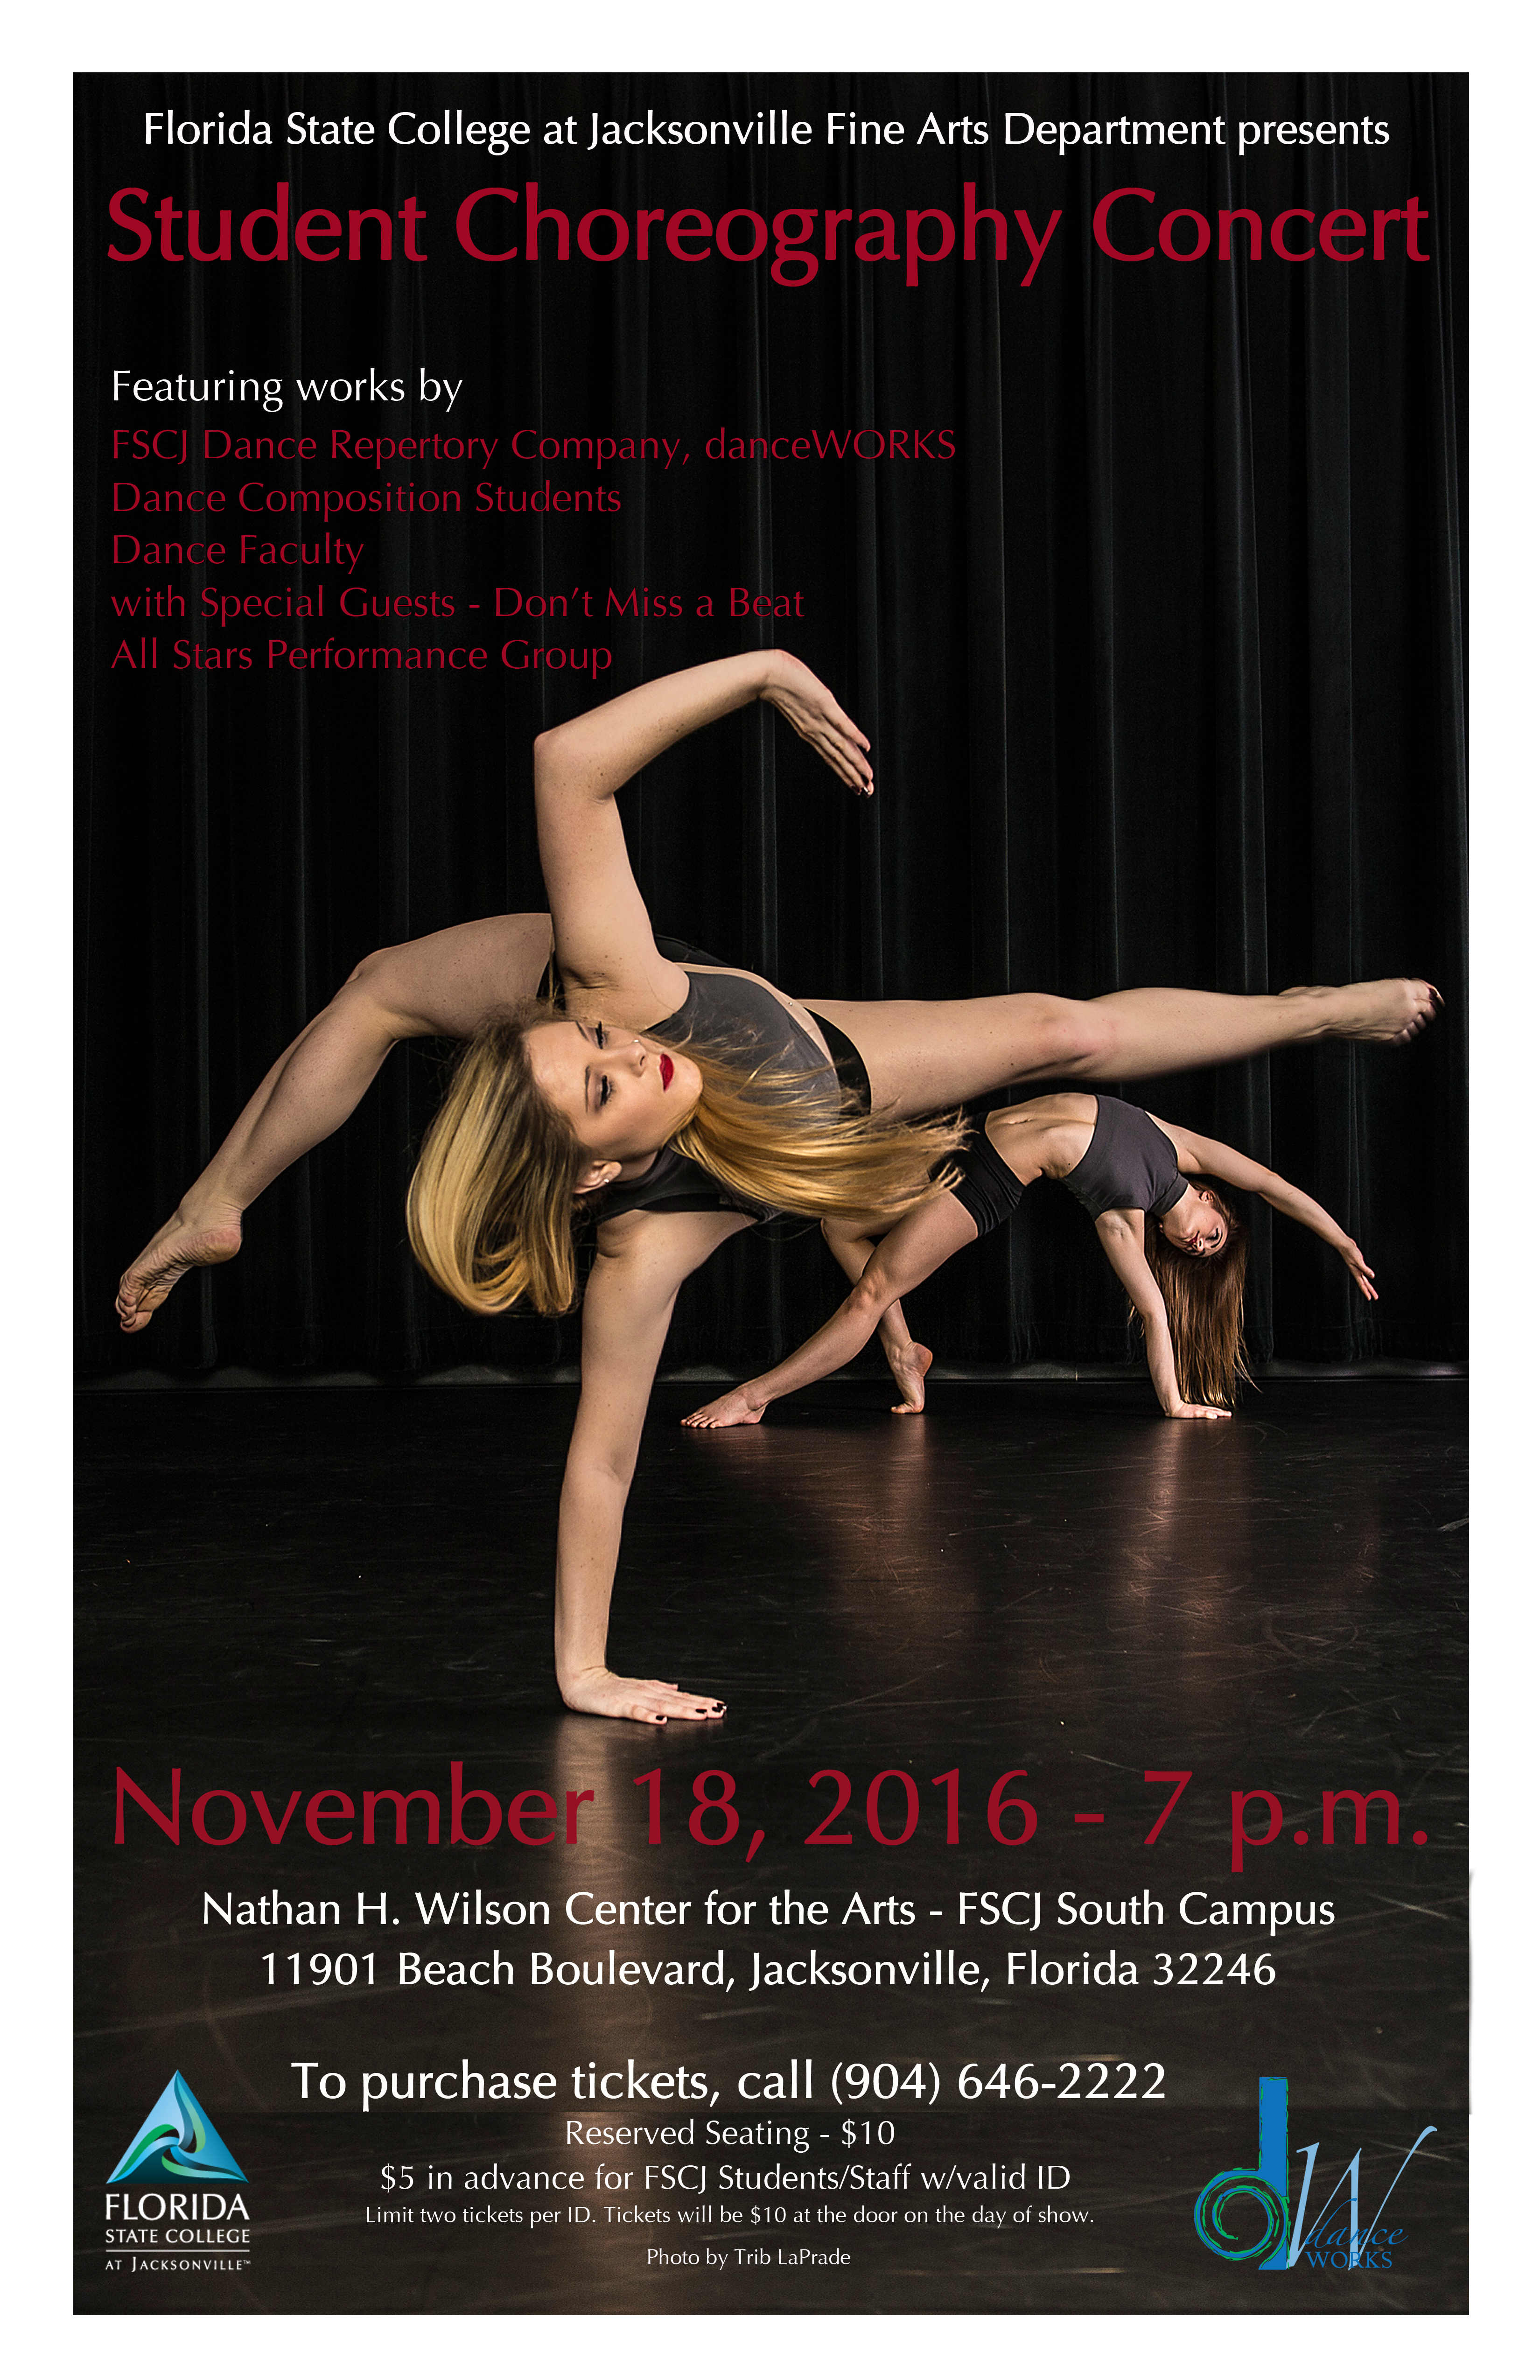 2016 Student Choreography Concert